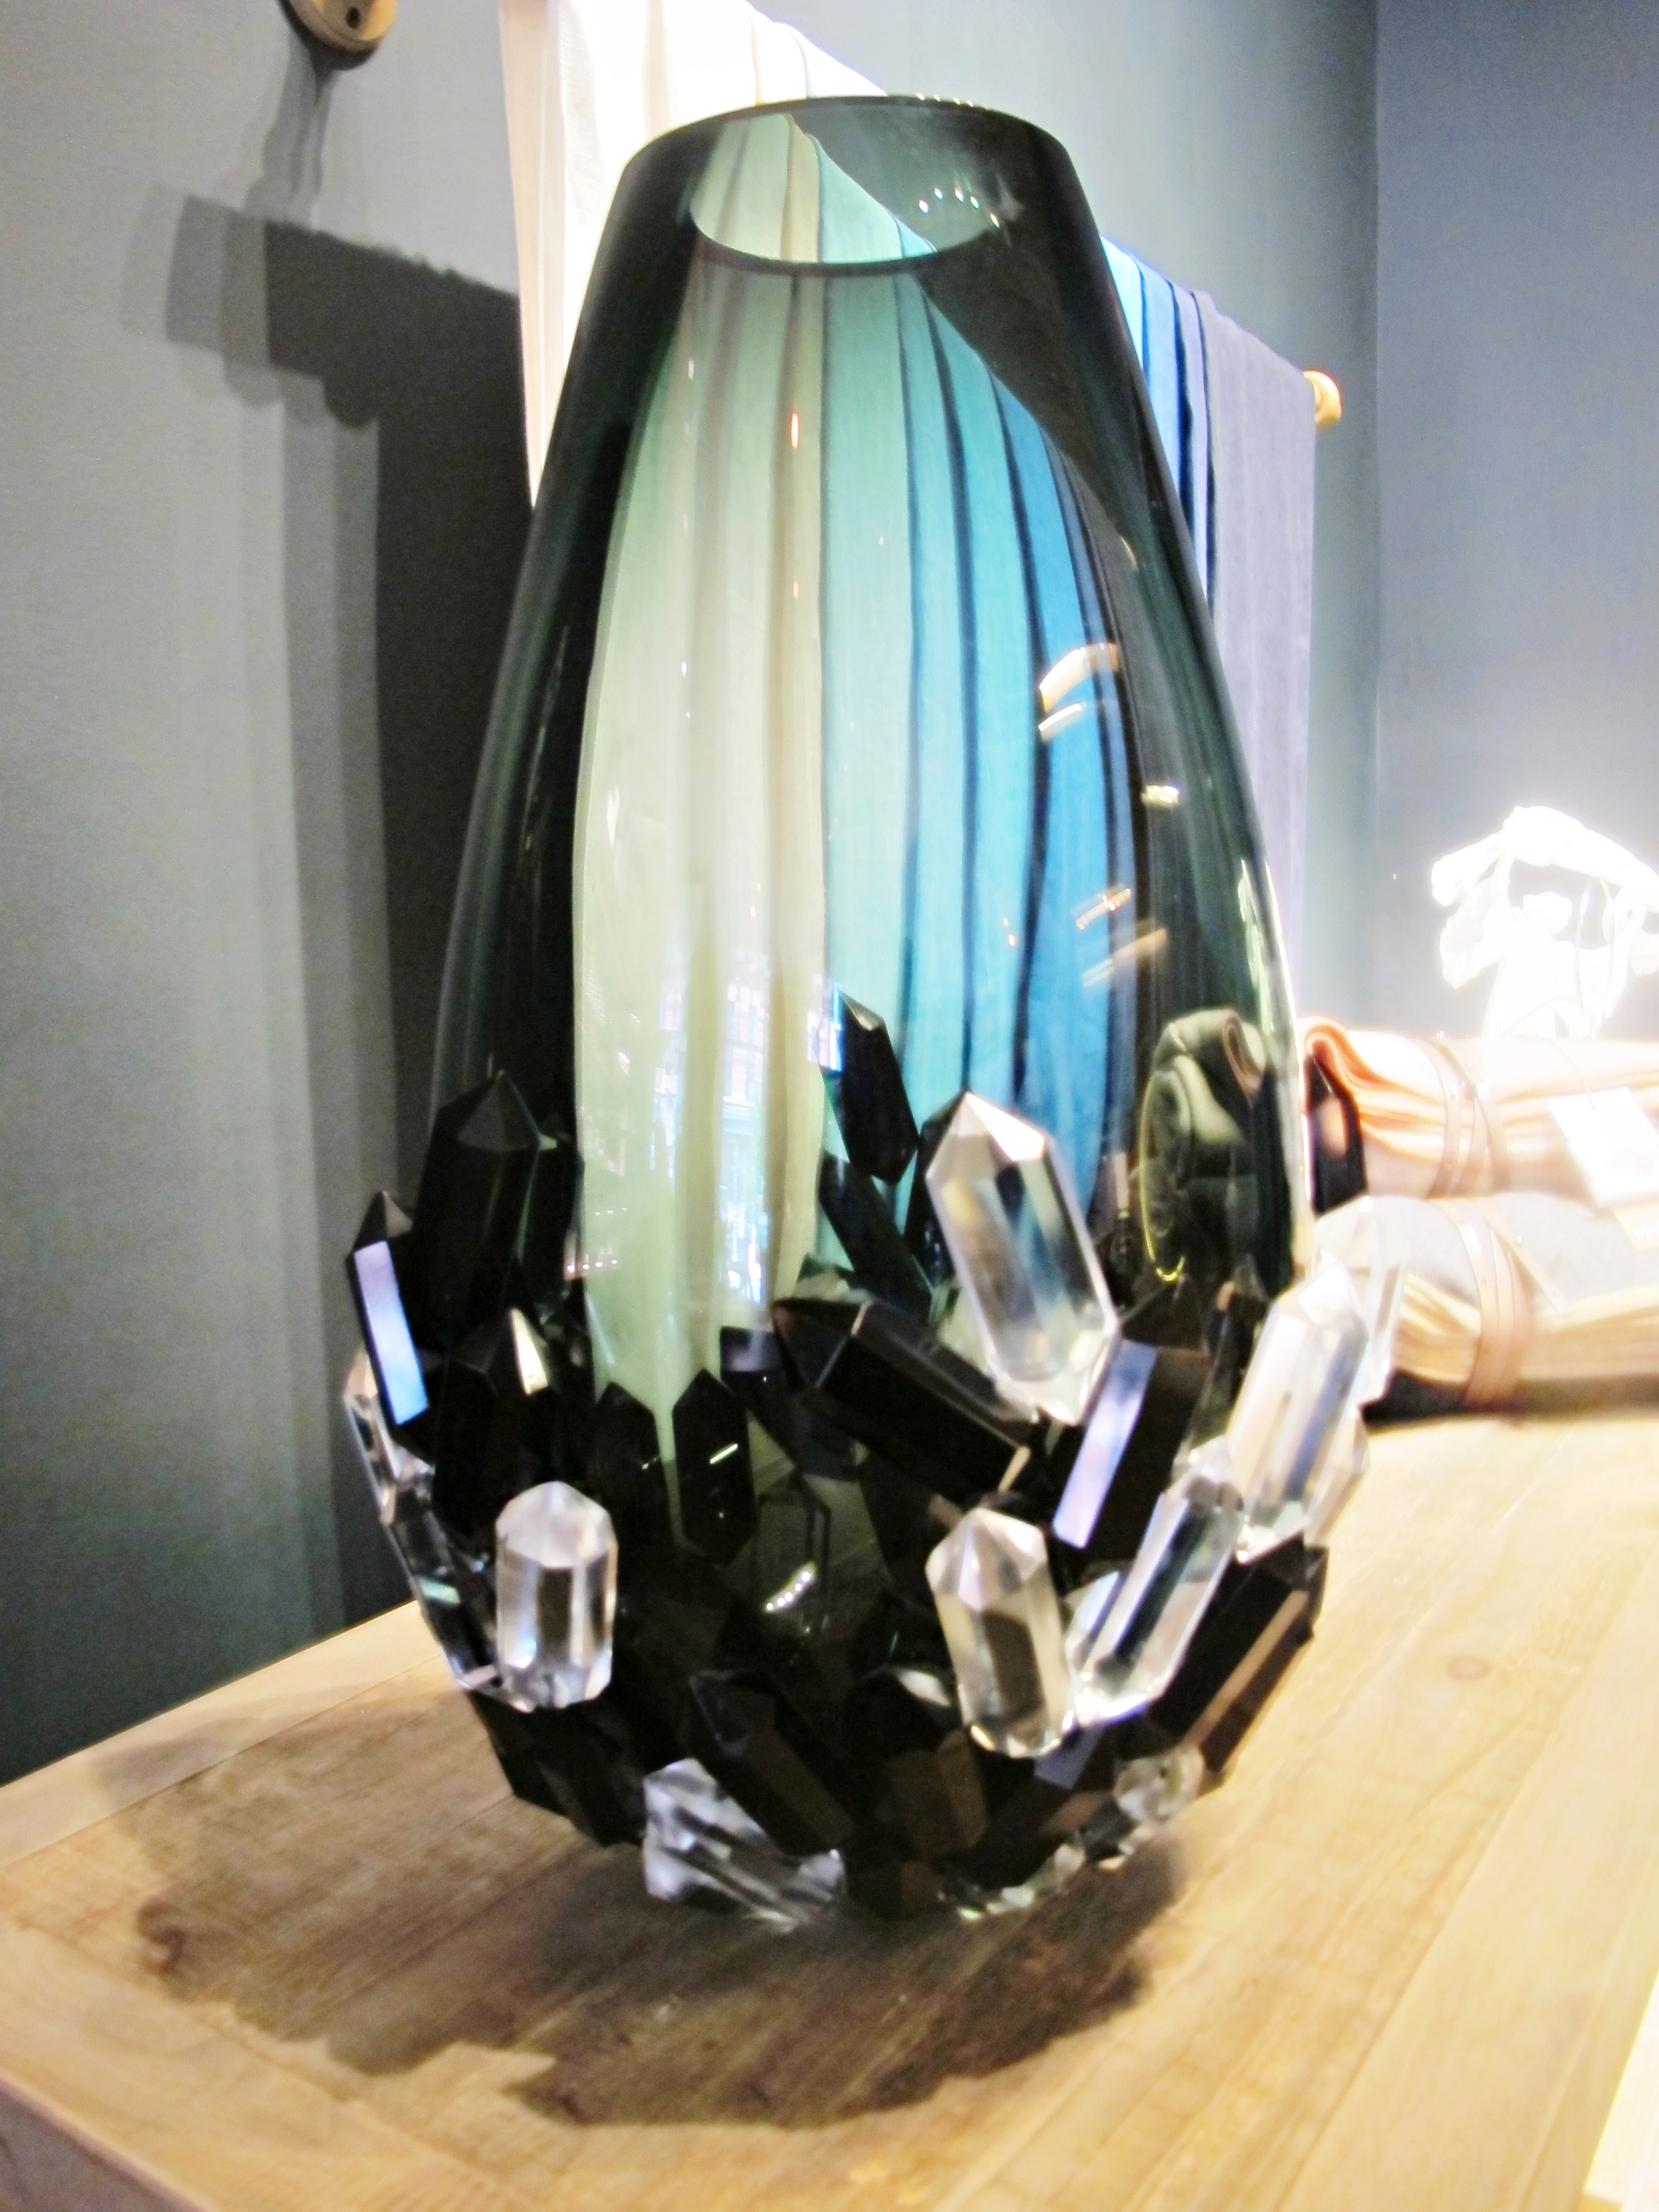 This is a really large vase by Hanne Enemarkthat looks like a piece of jewelry. Perfect statement piece.